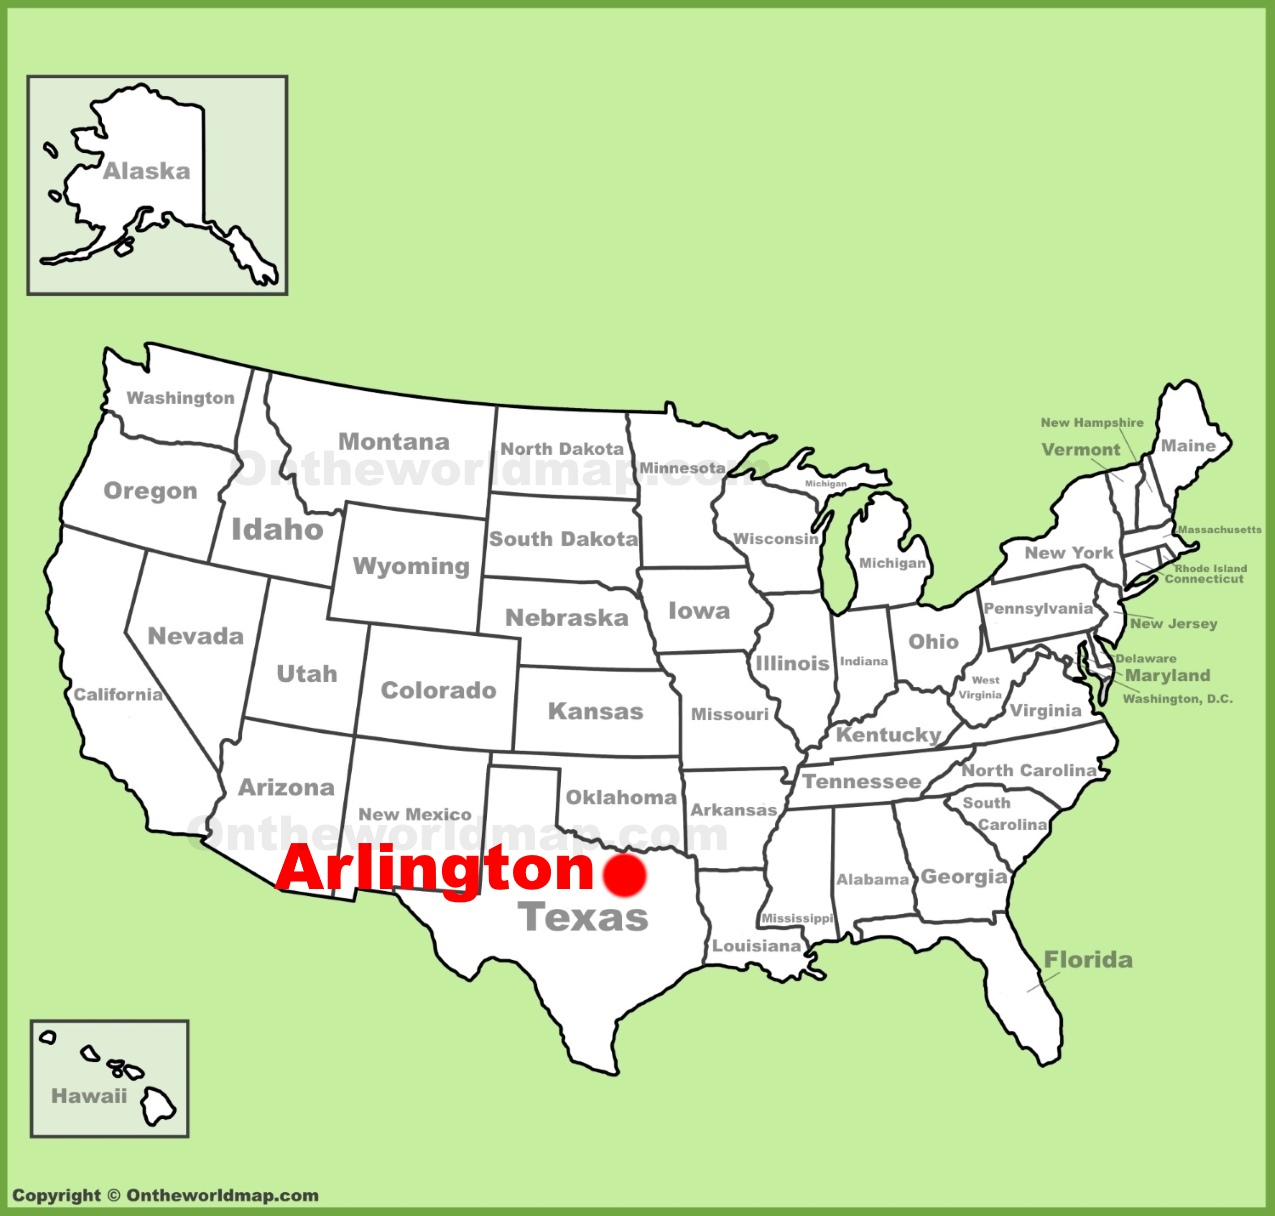 Arlington (Texas) Location On The U.s. Map - Arlington Texas Map